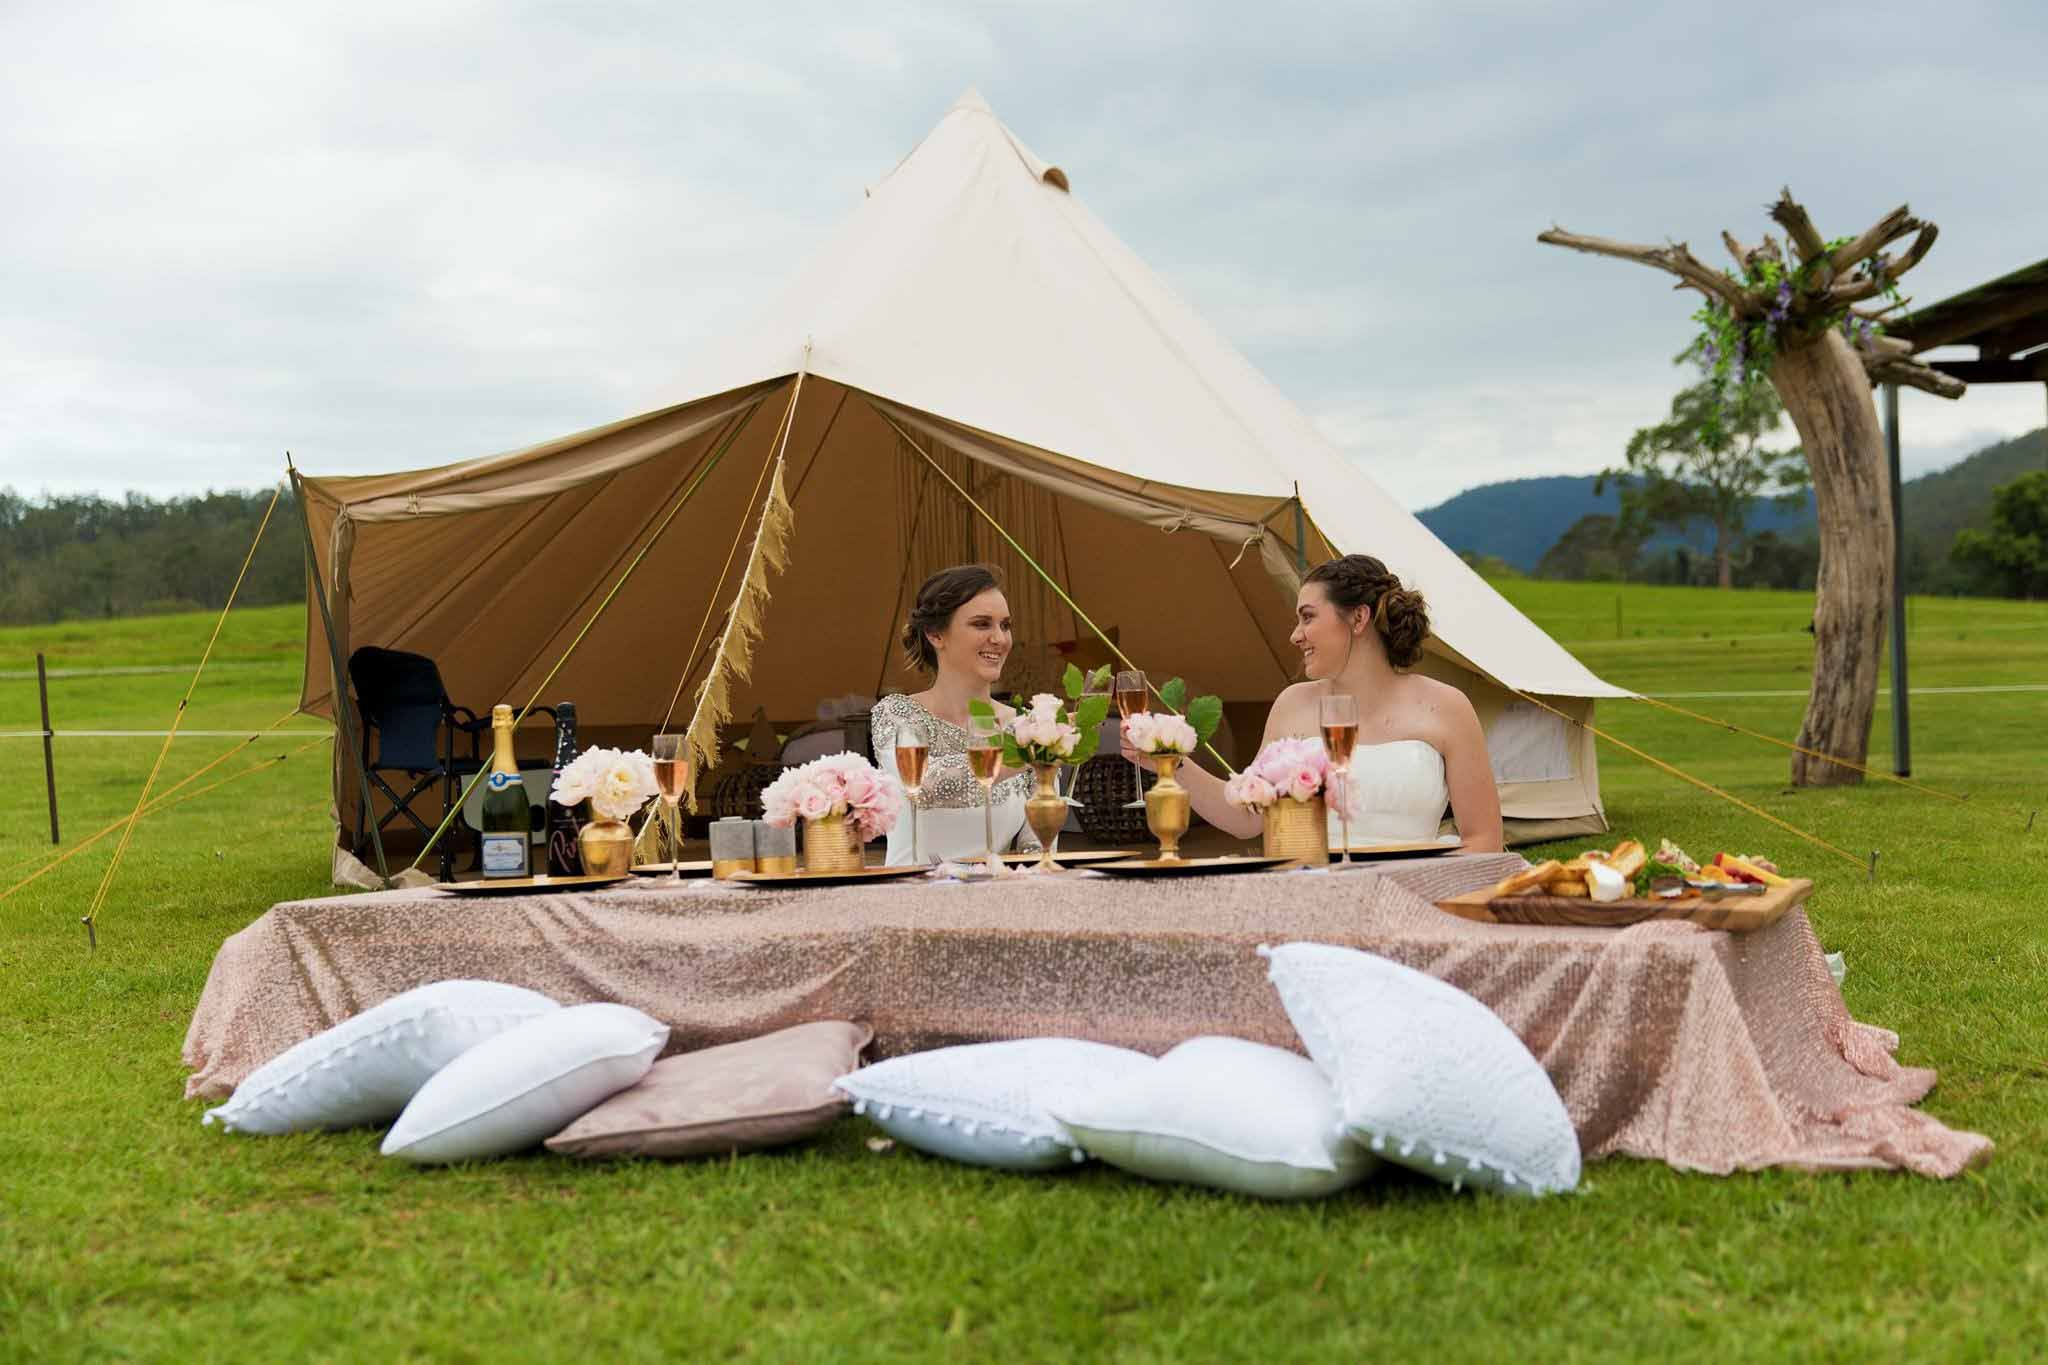 Catering Are Sunshine Coast Wedding Caterers Who Offer A Unique Dining Experience And Customise Menus To Suit Our Clients We Specialise In Private Property